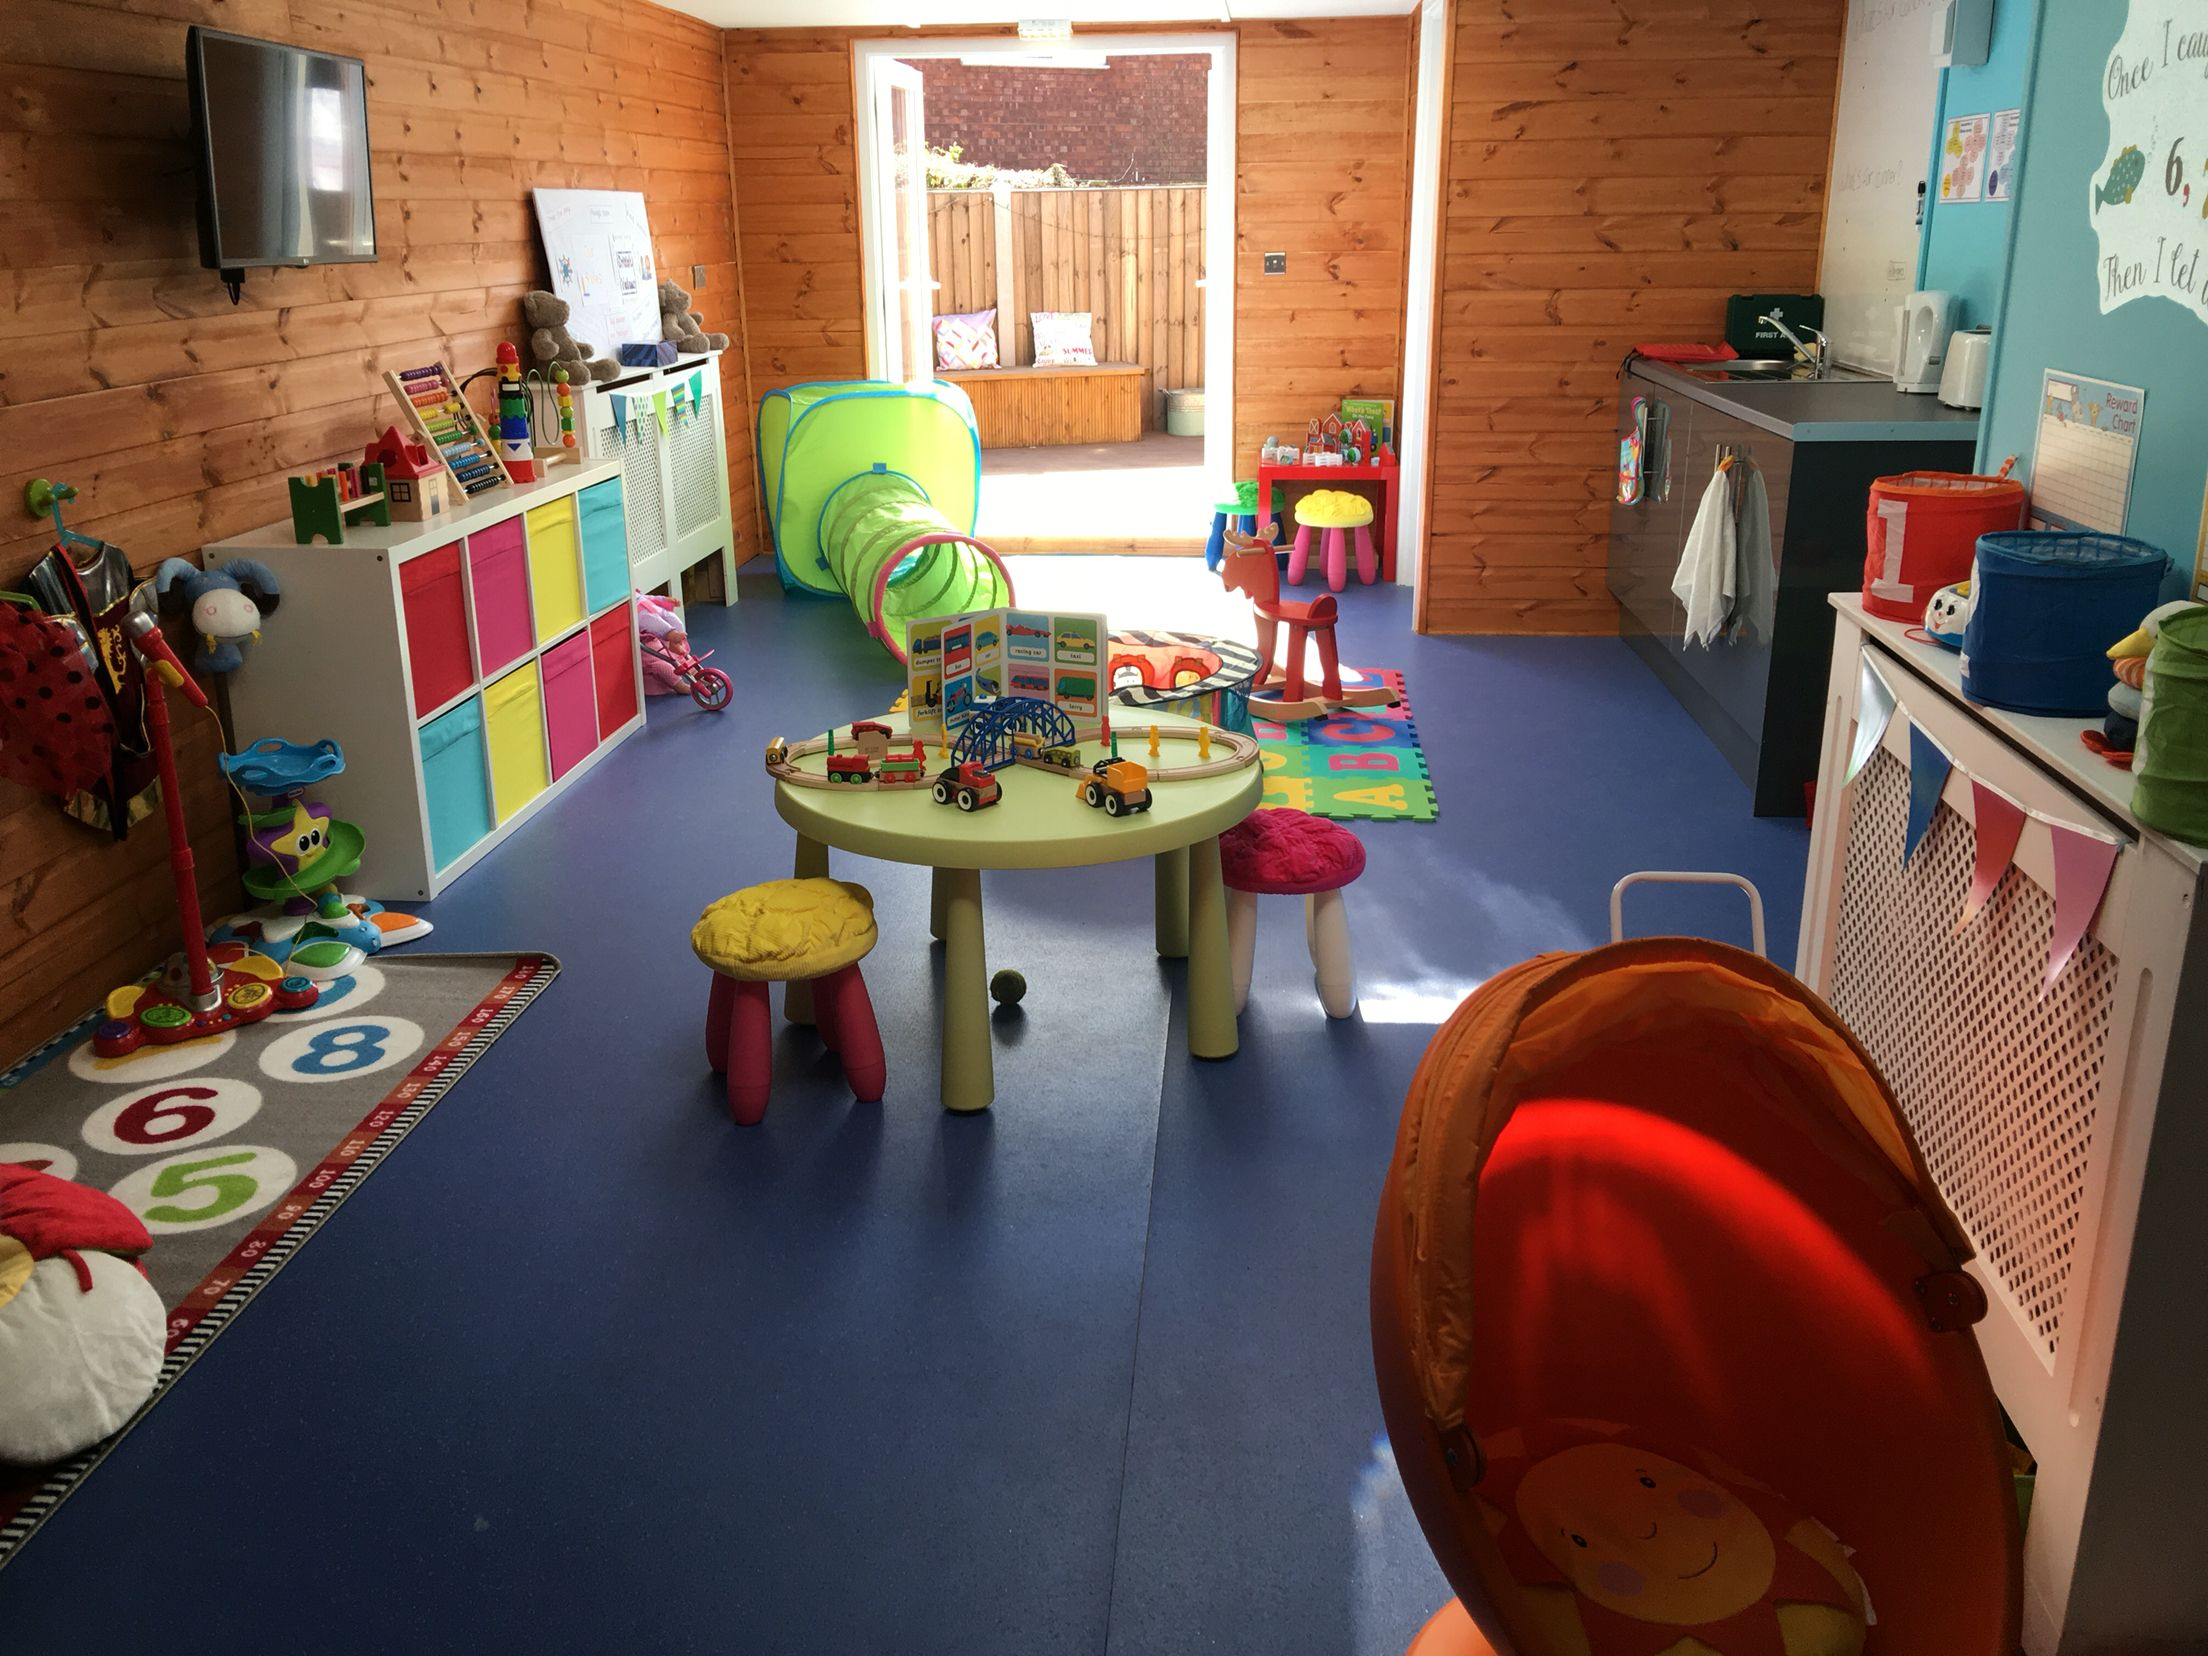 My Childminding Play Room | Childminders Playroom, Playroom